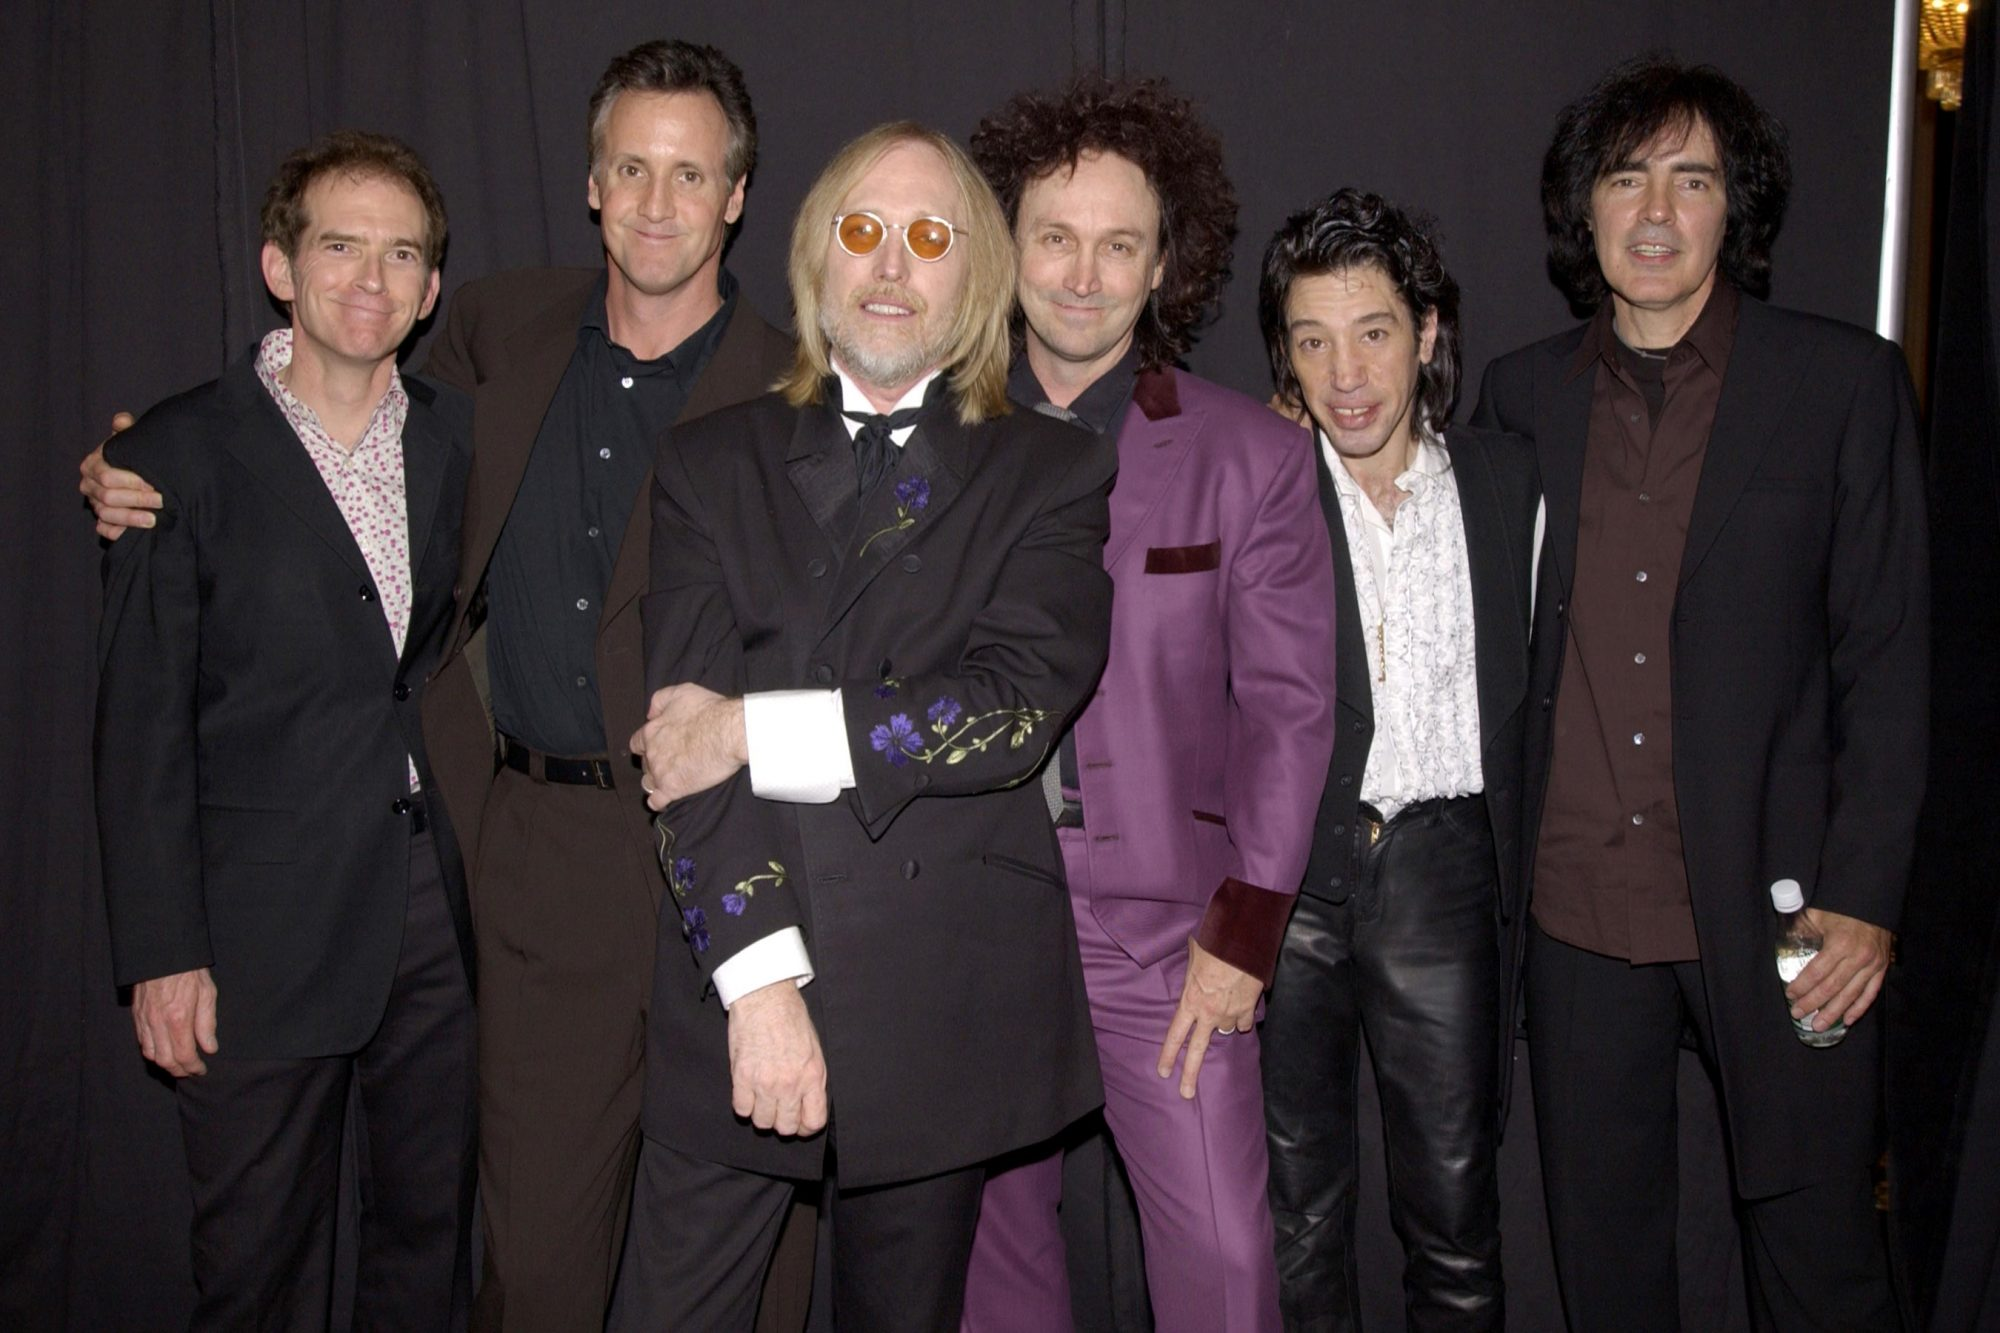 17th Annual Rock and Roll Hall of Fame Induction Ceremony - Backstage in Press Room